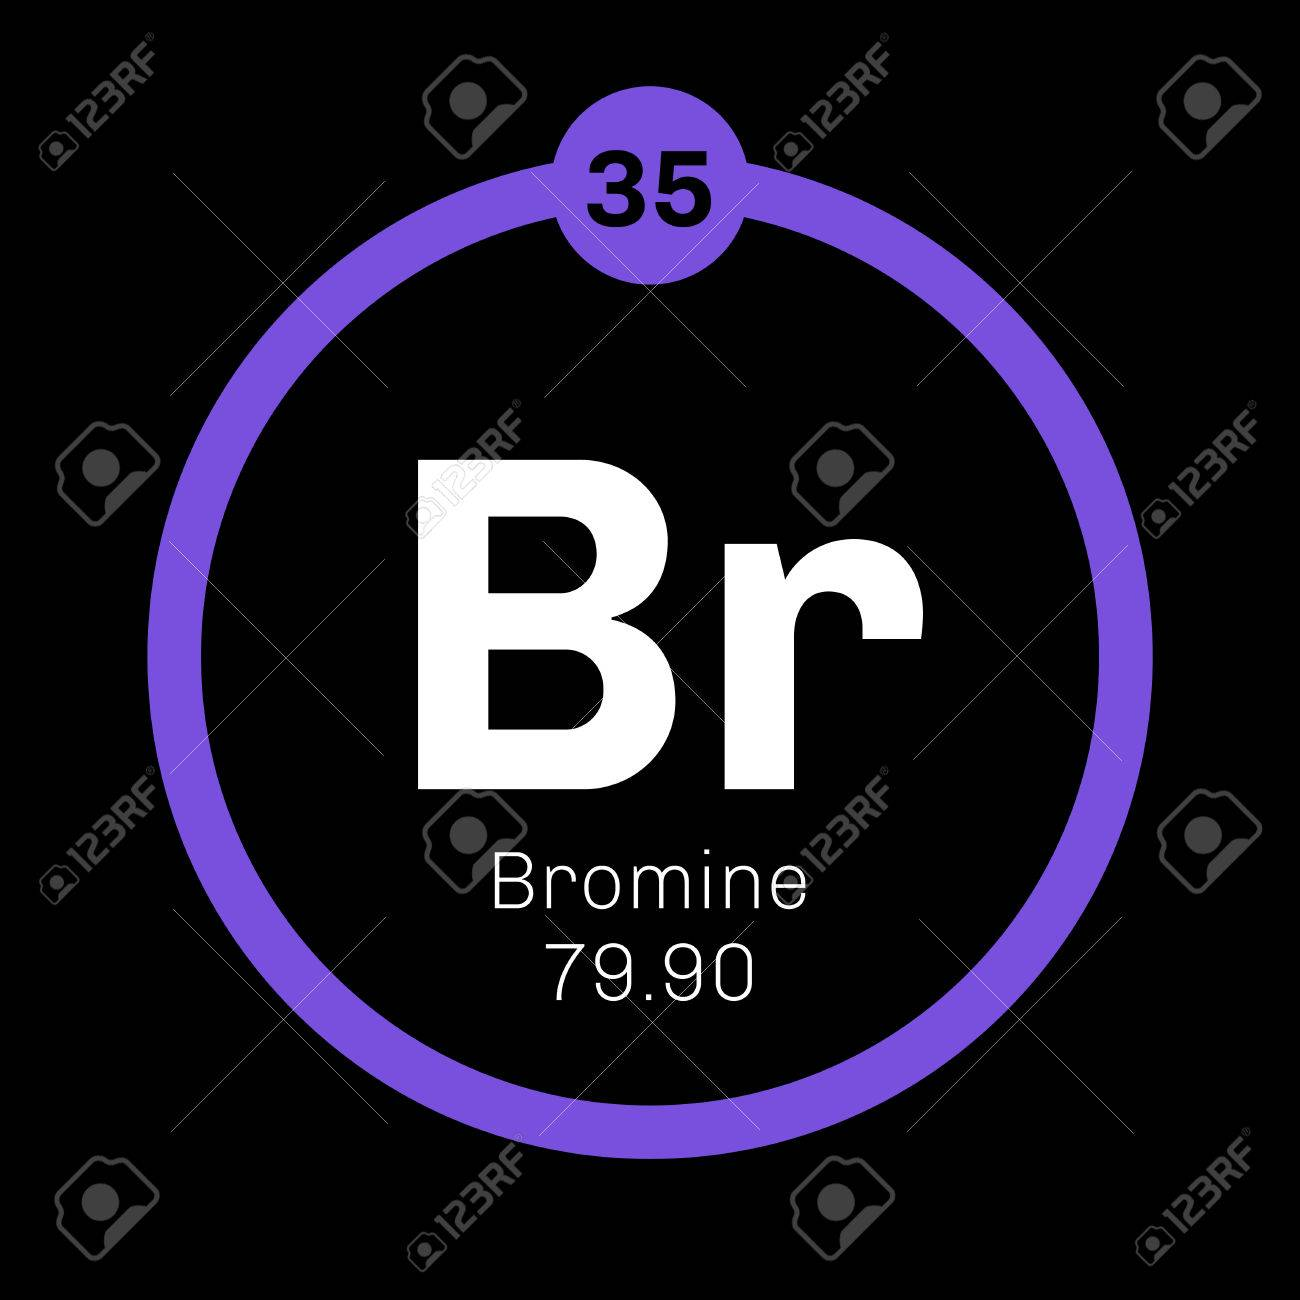 Bromine chemical element corrosive and toxic colored icon with bromine chemical element corrosive and toxic colored icon with atomic number and atomic weight biocorpaavc Image collections